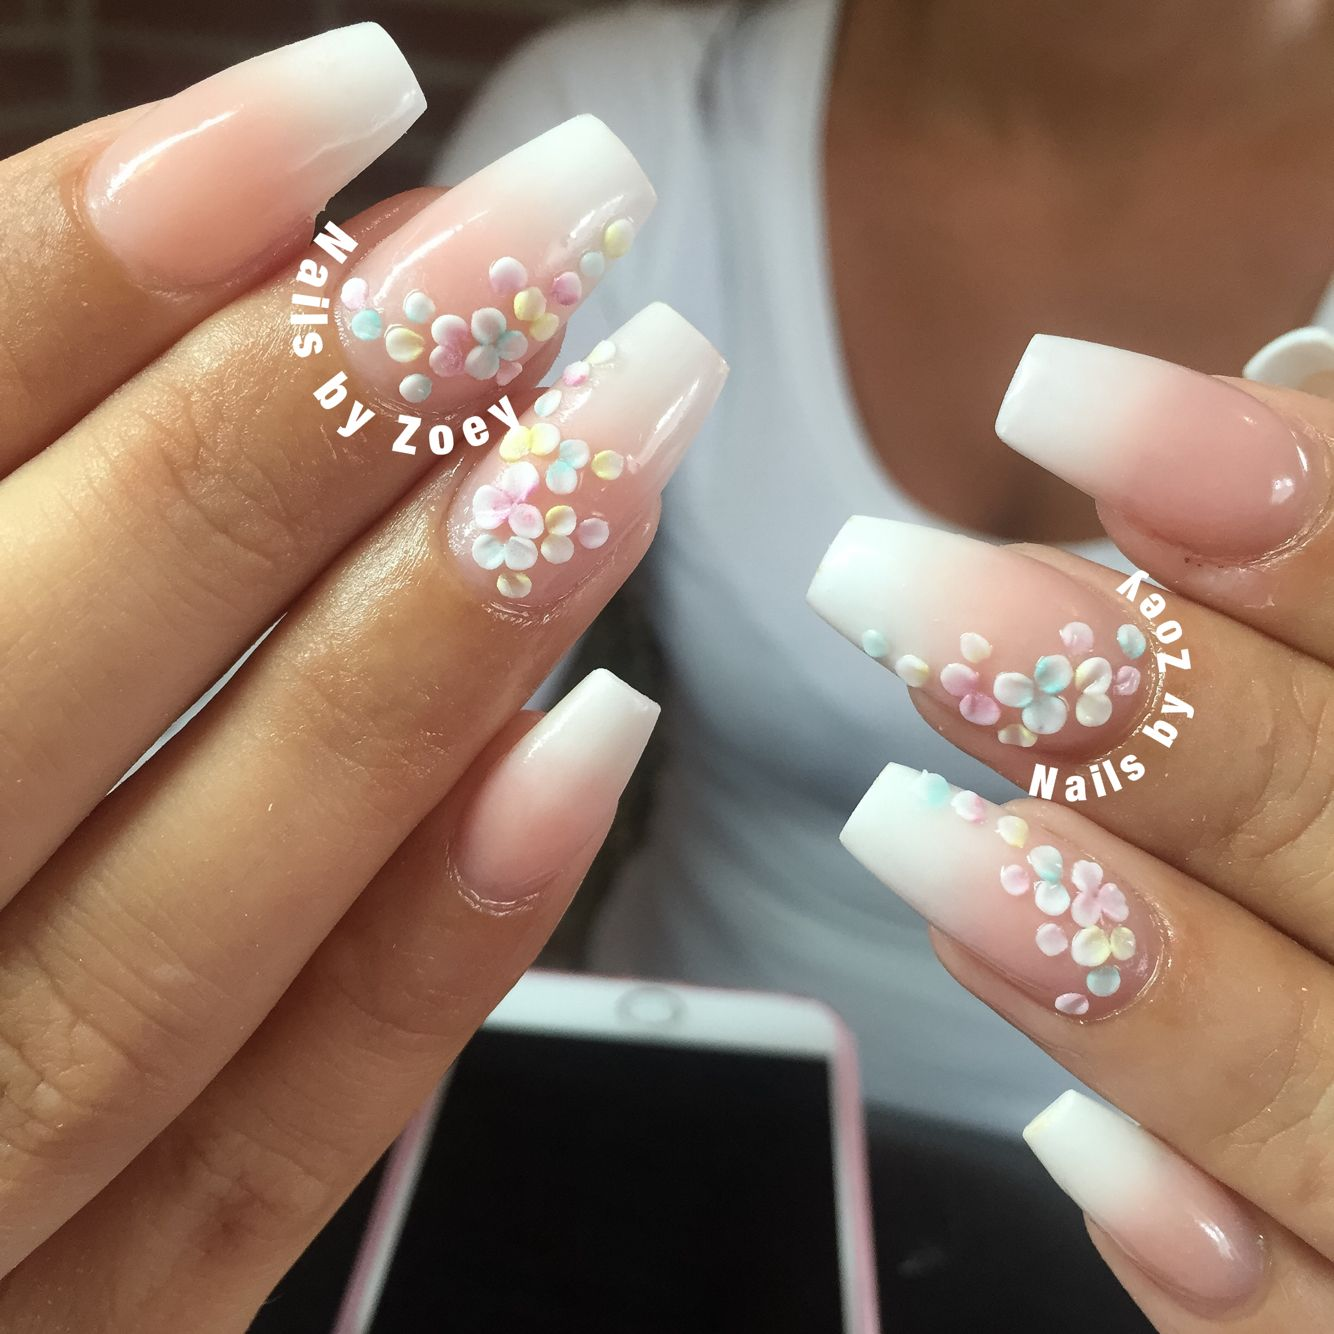 About baby boomer nail art tutorial by nded on pinterest nail art - 3d Nails Art Babyboom Nails Ombre Acrylic Gel